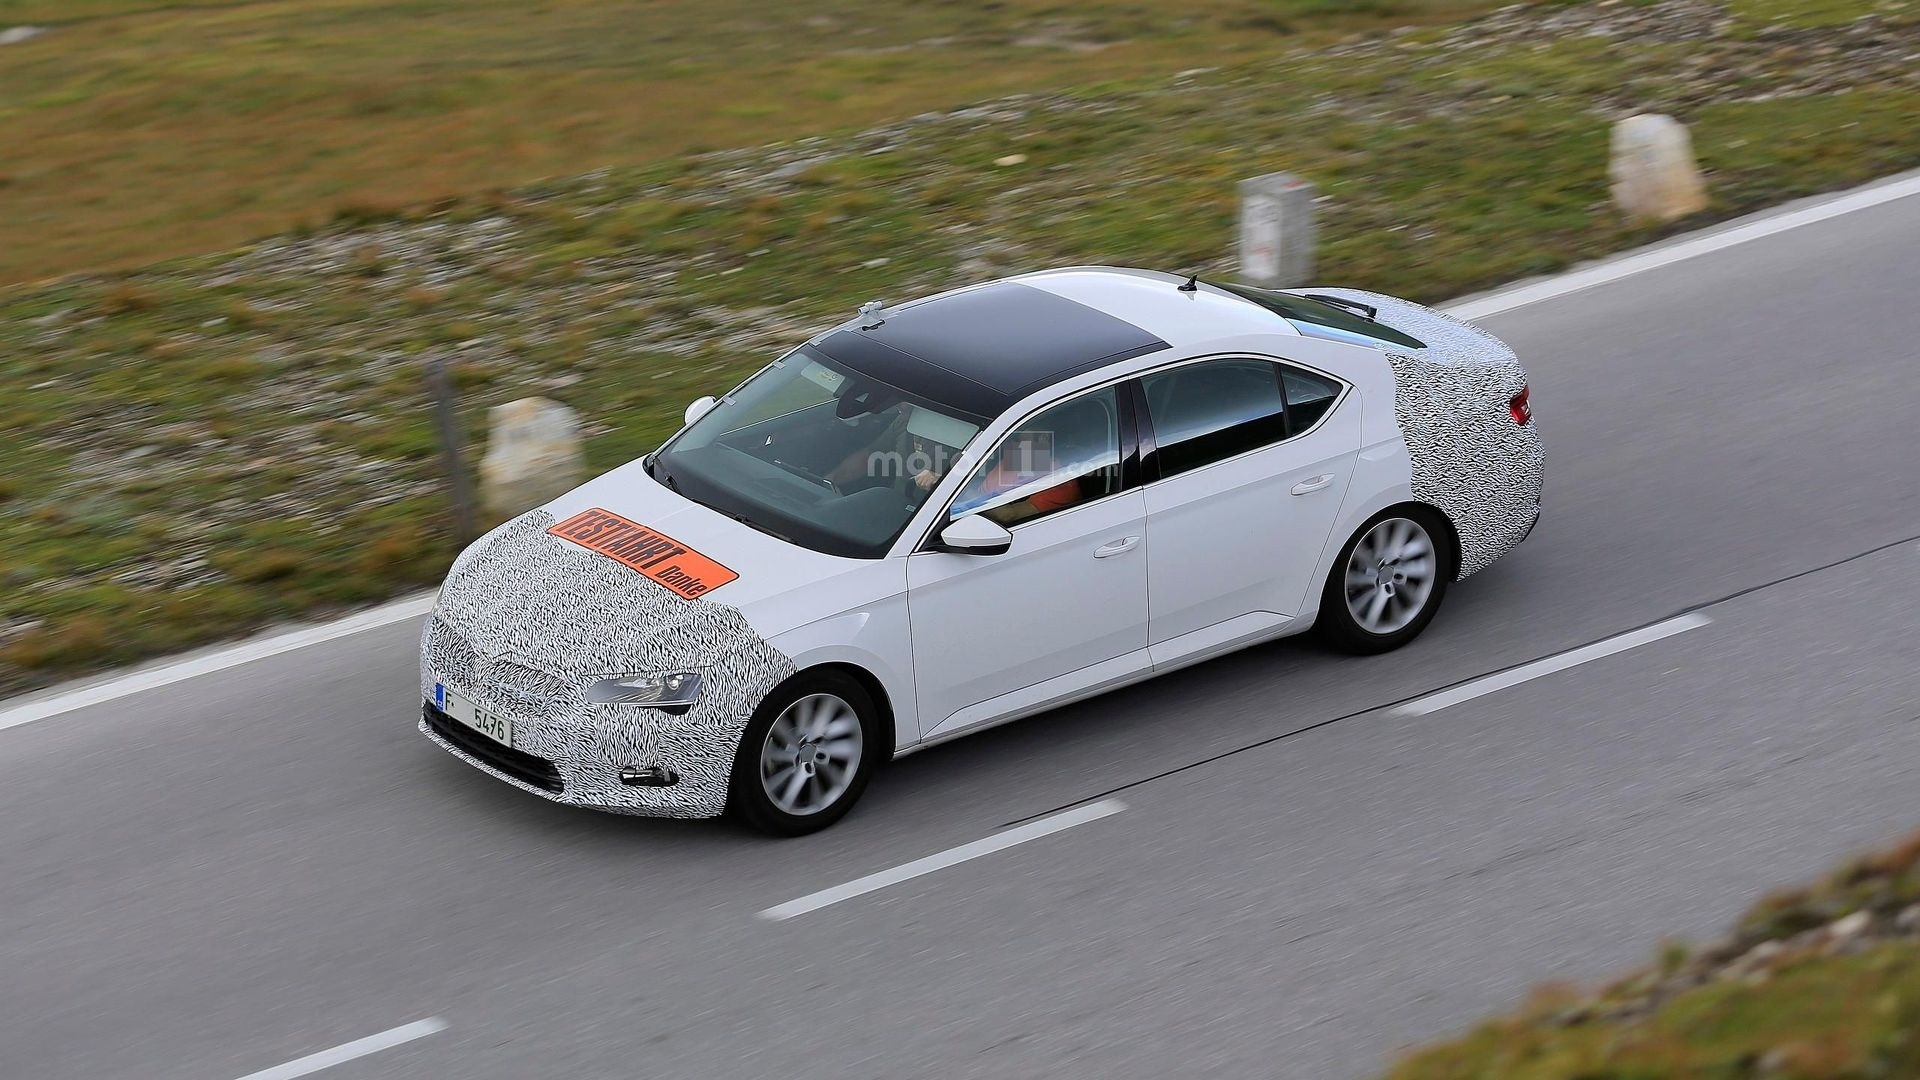 76 New Spy Shots Skoda Superb Rumors